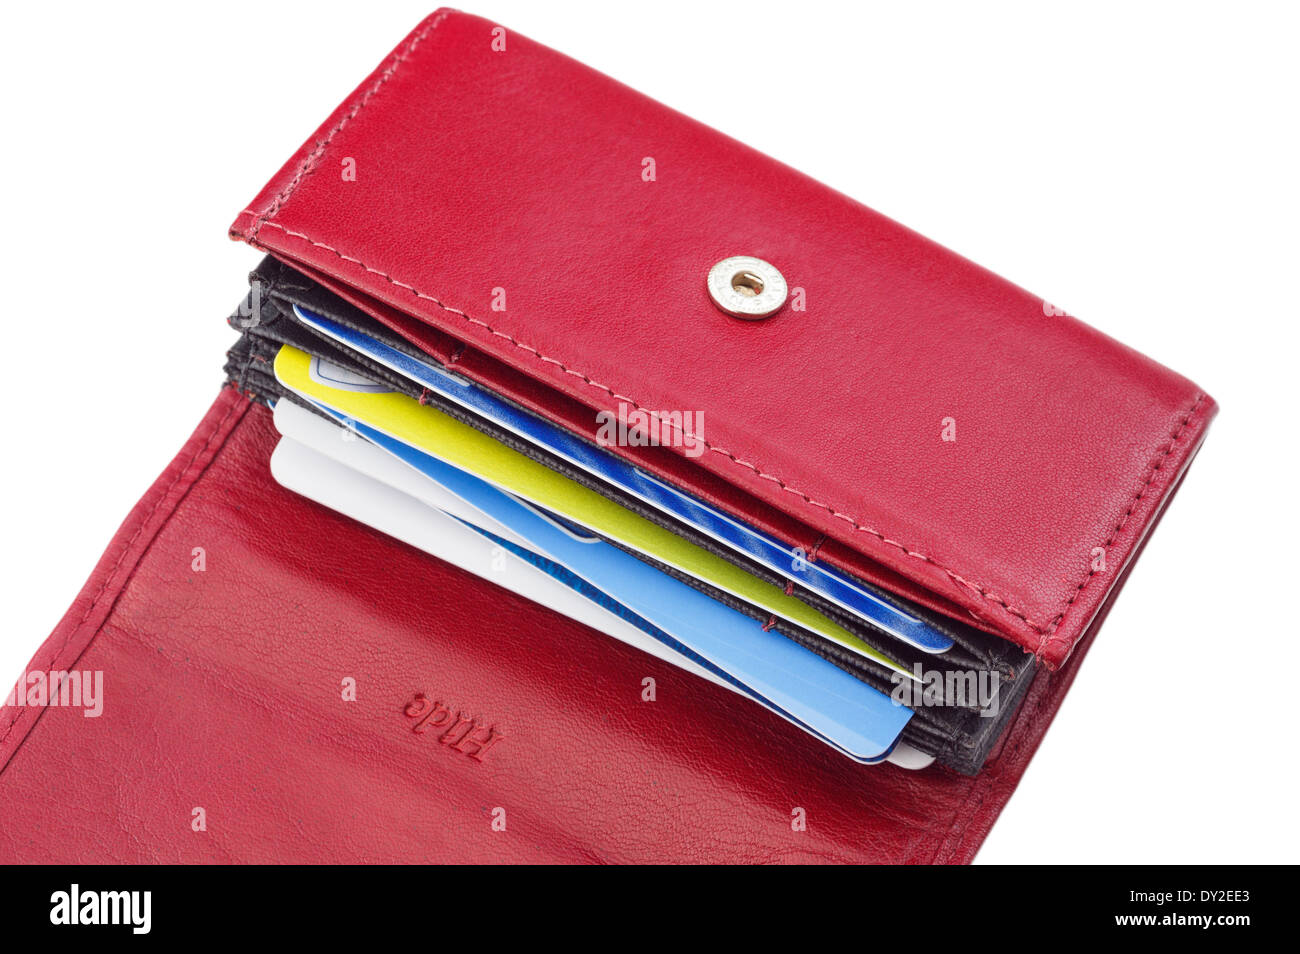 An open red leather wallet credit card holder containing bank cards on a white background. England UK Britain - Stock Image